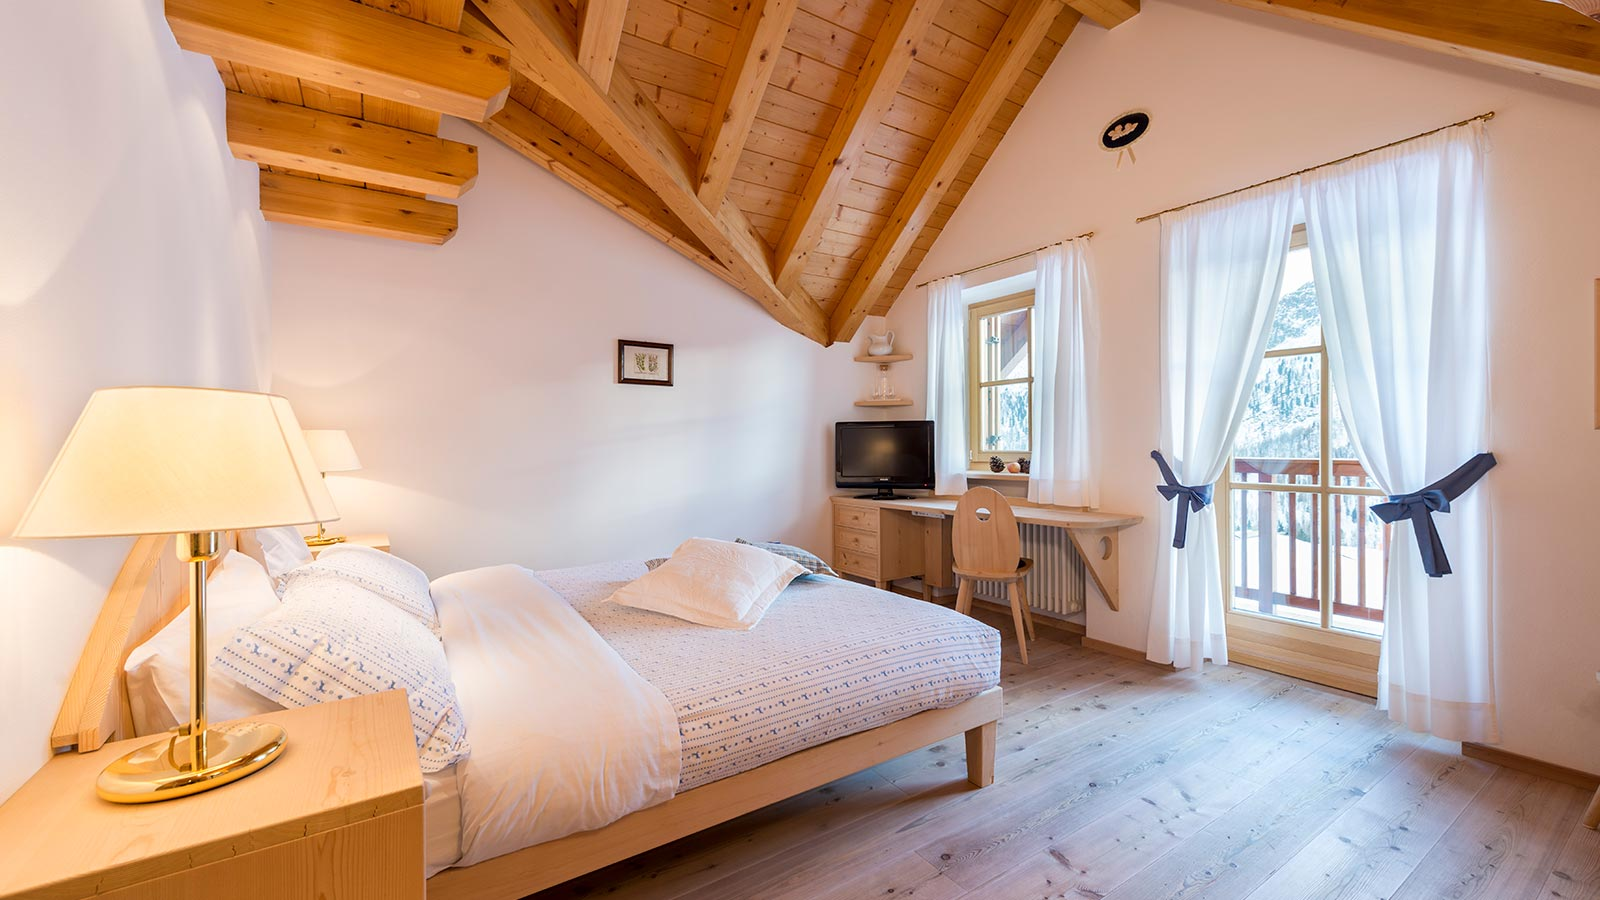 Particular of a bedroom of the Chalet at San Pellegrino Pass